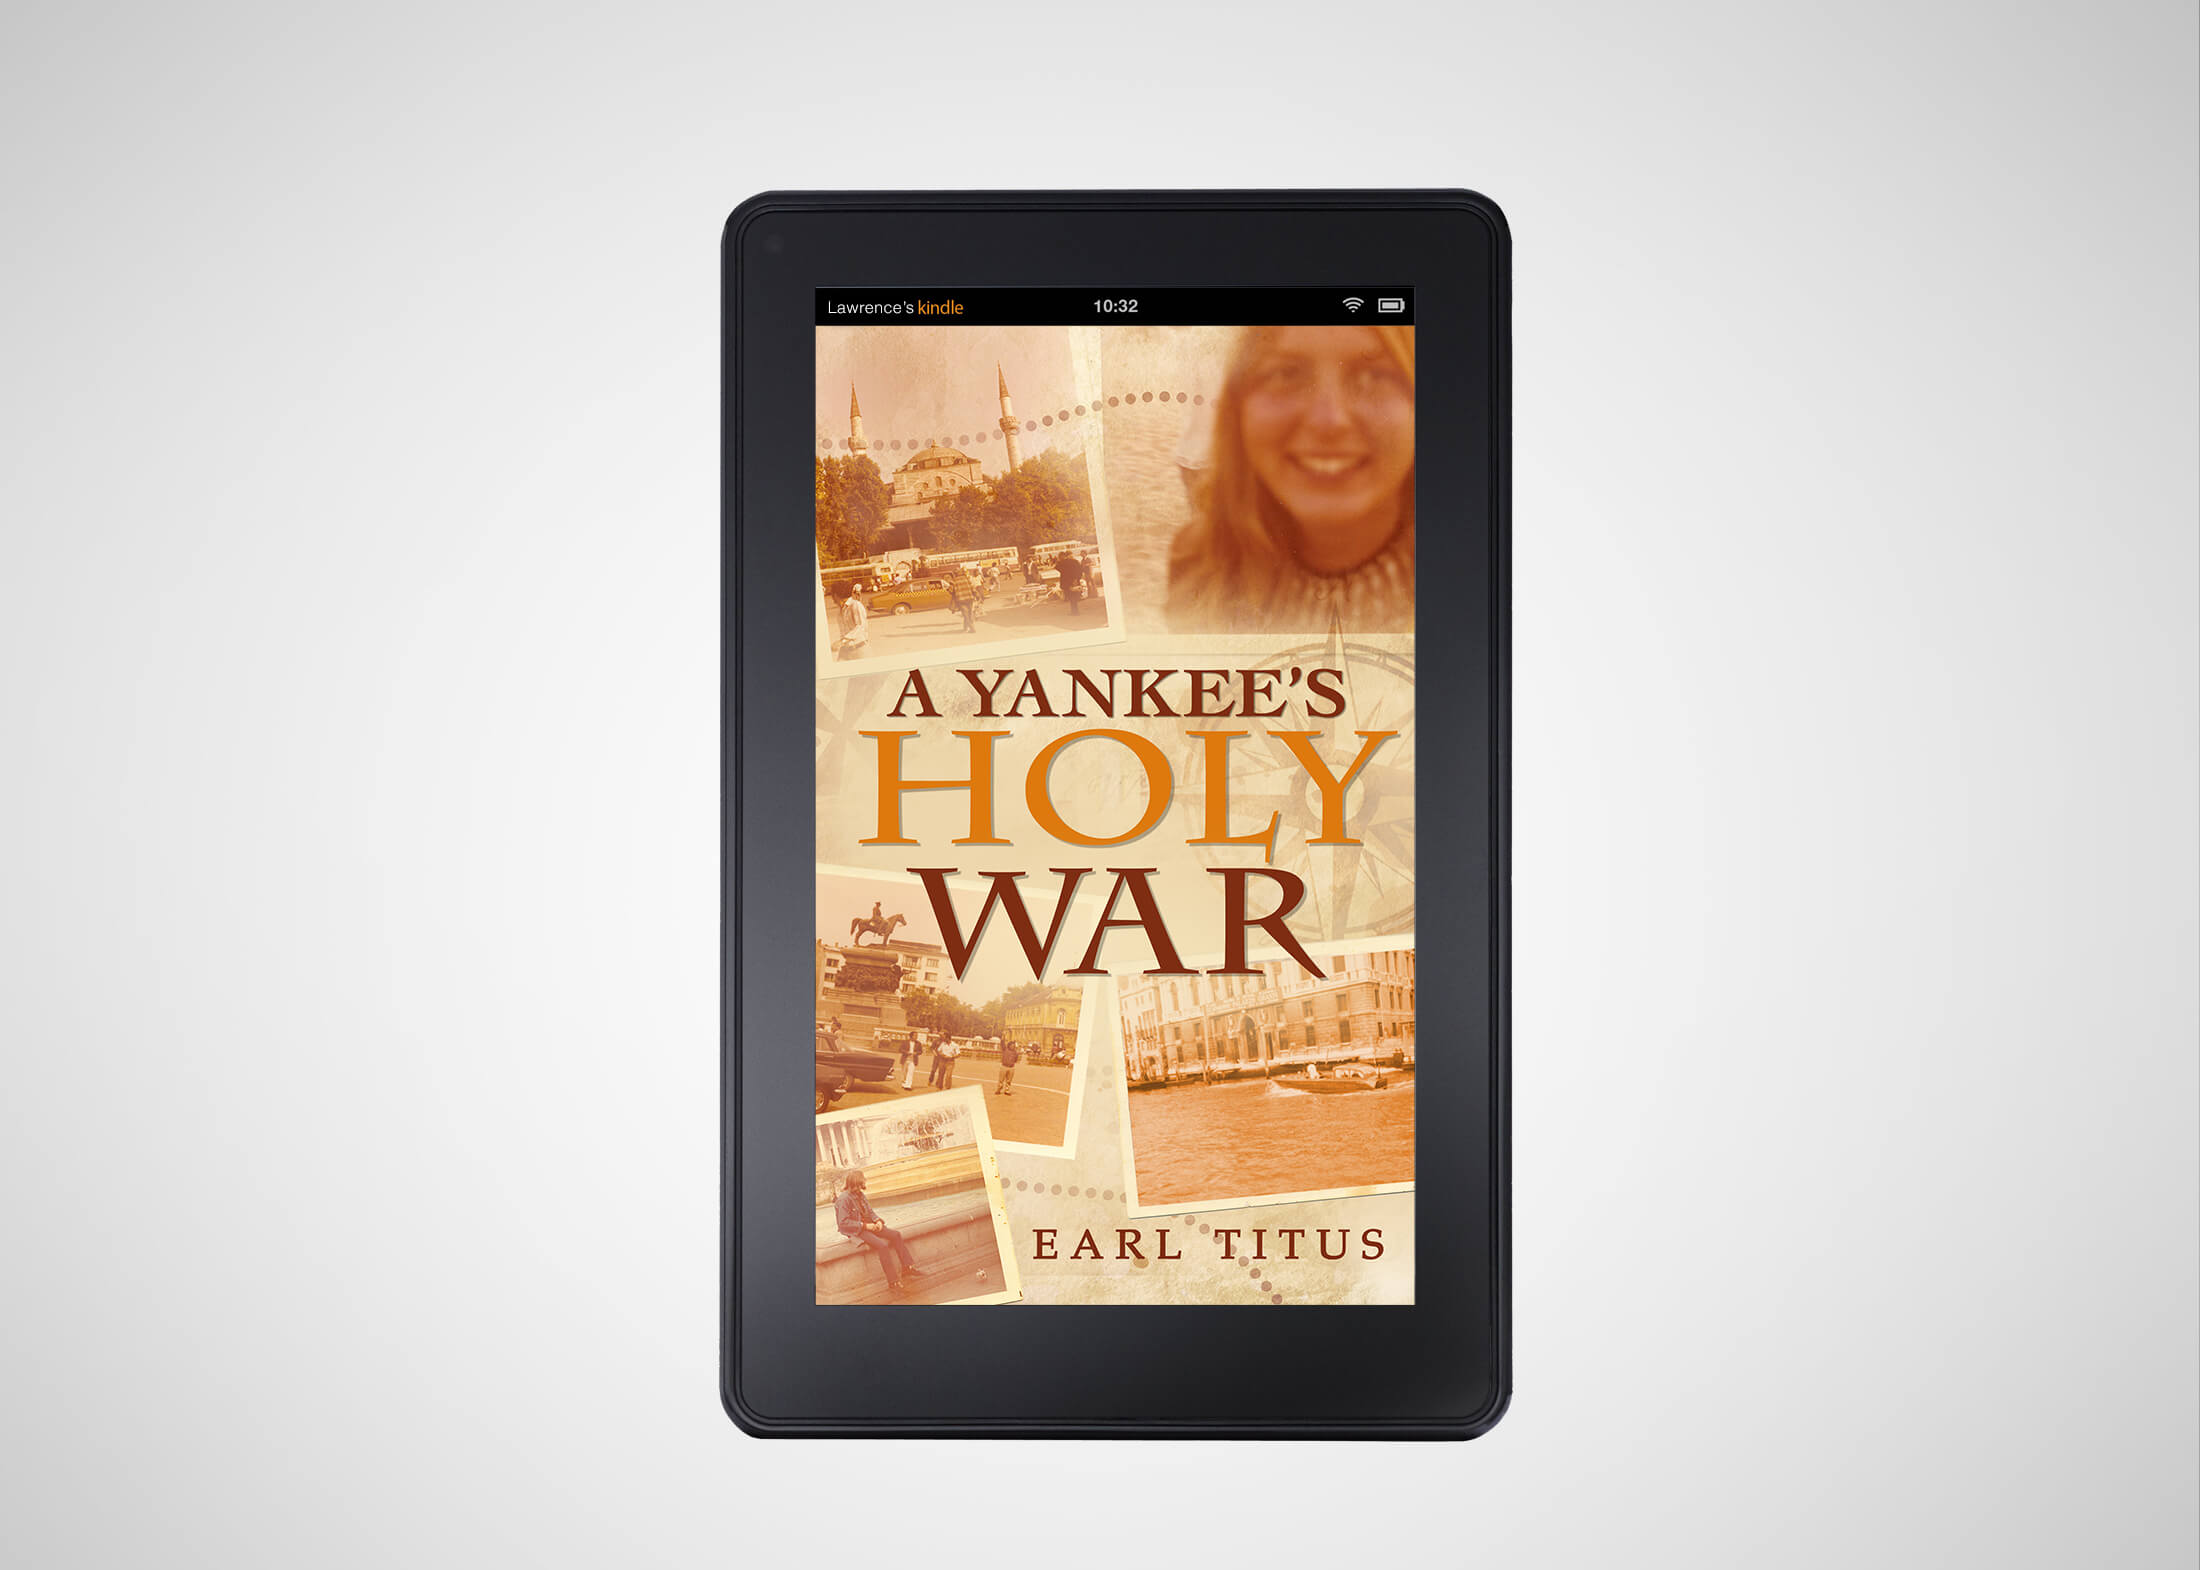 The-Yankees-Holy-War-kindle(1)